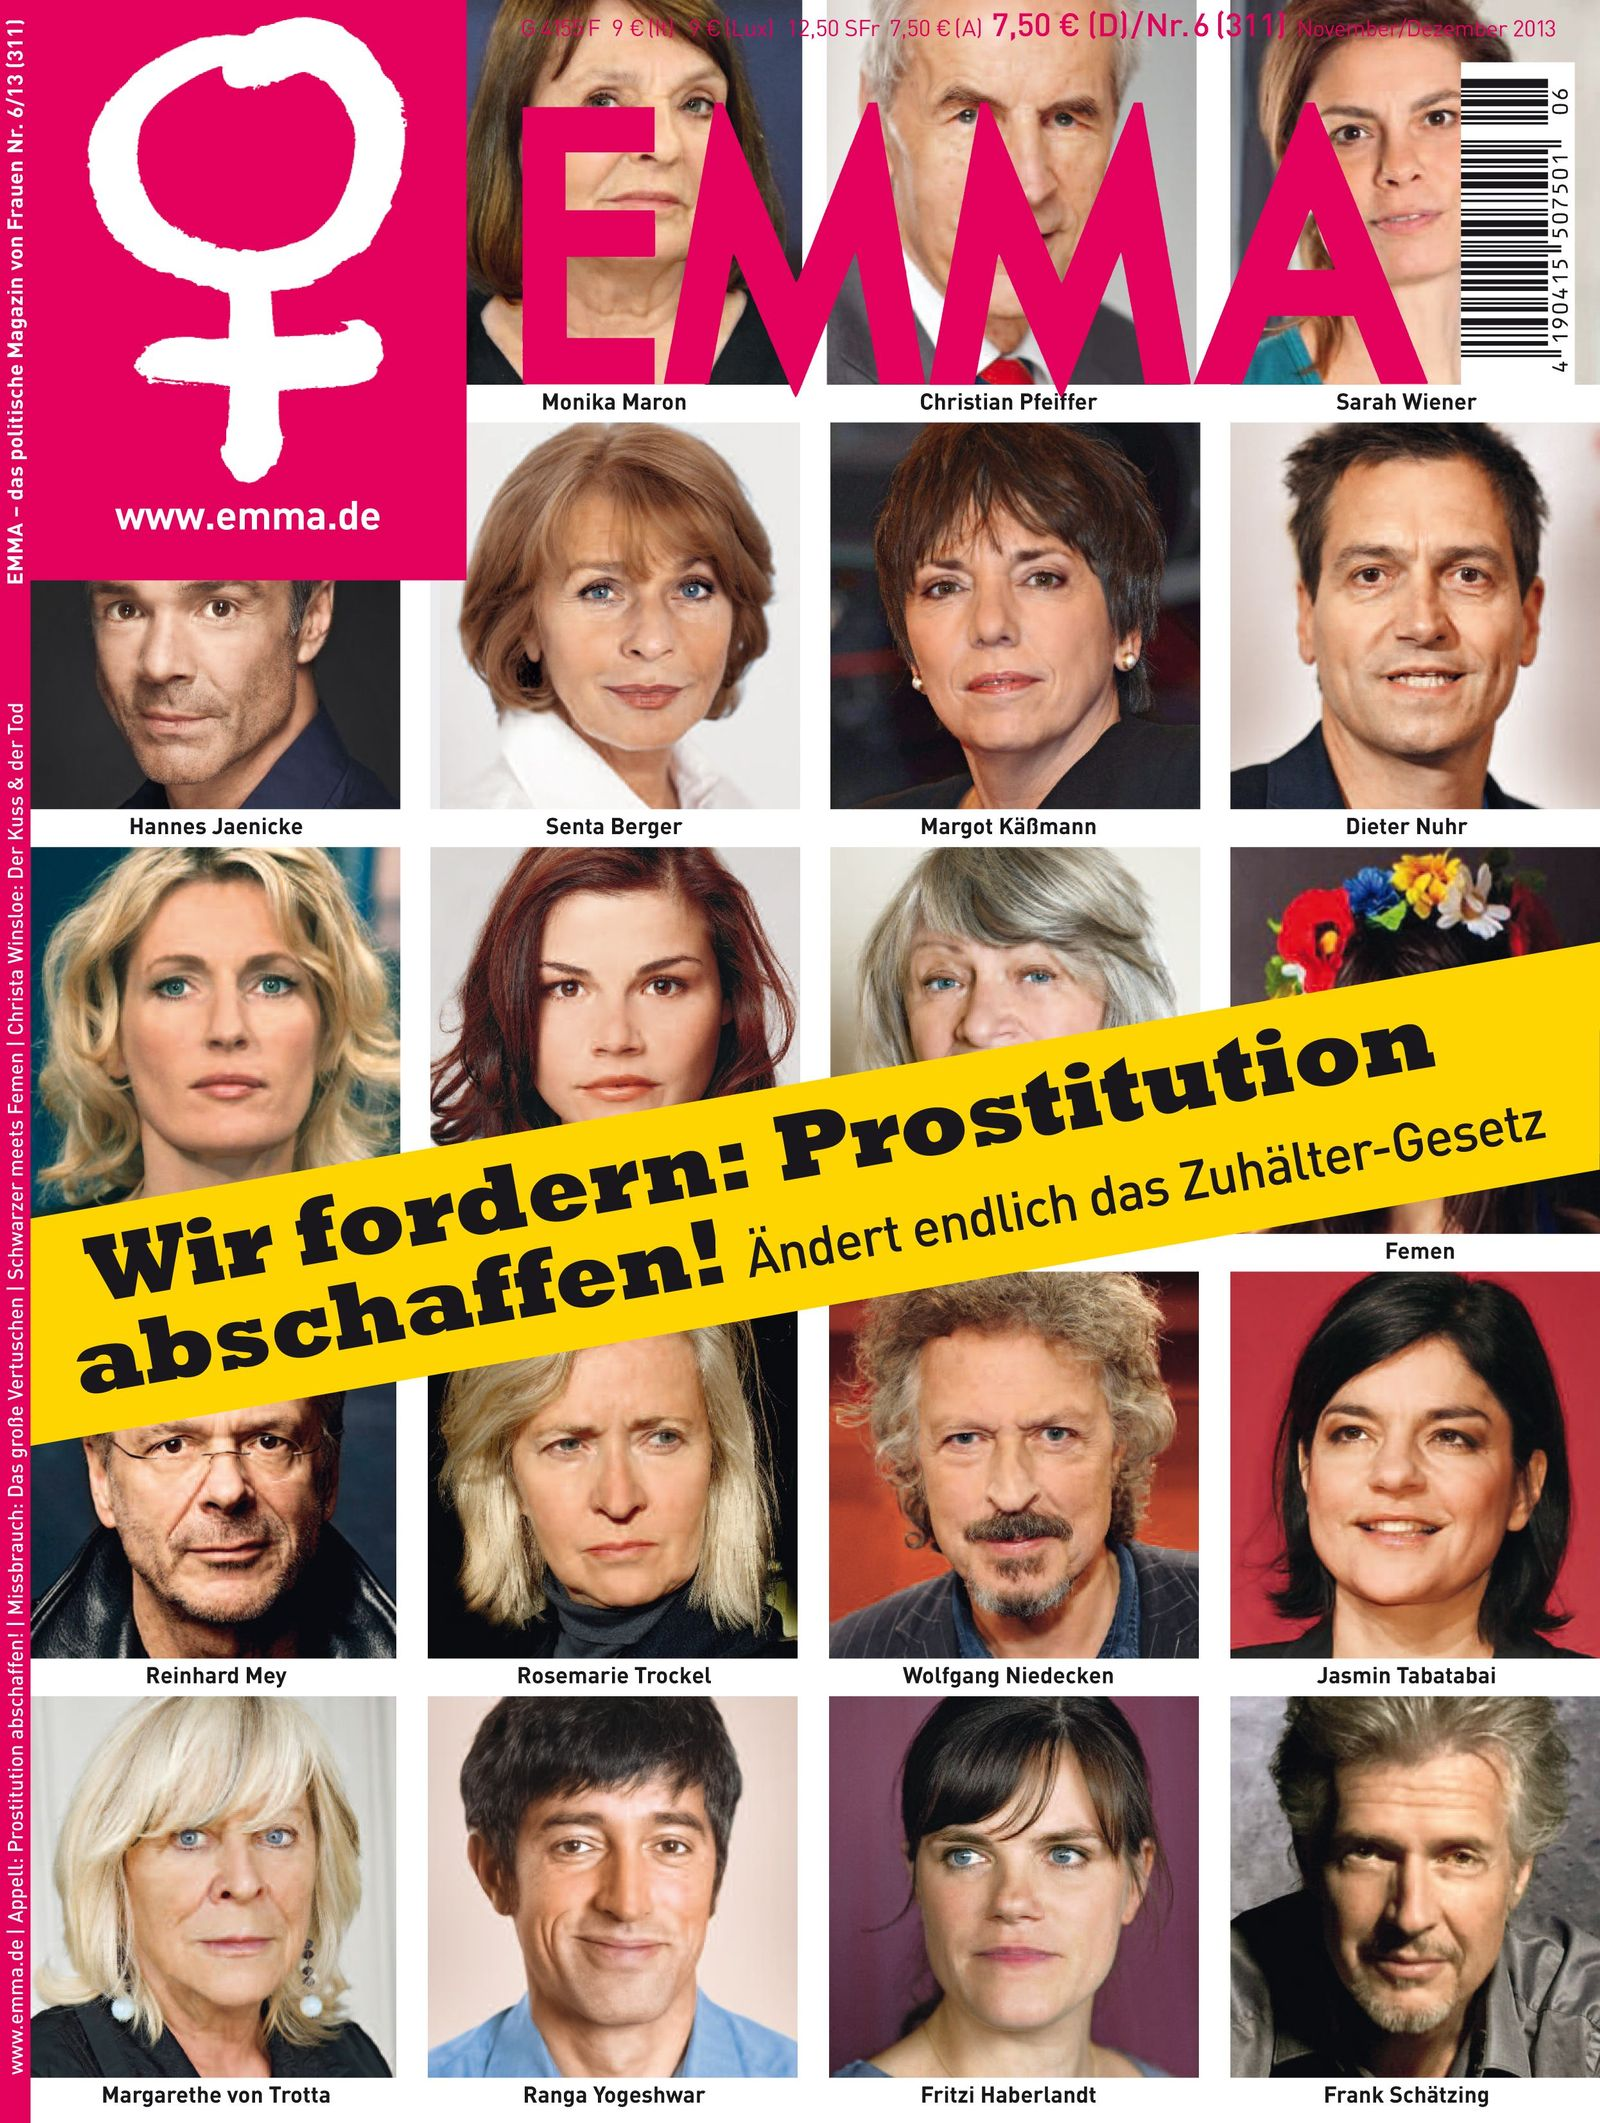 EMMA Cover/ Prostitution